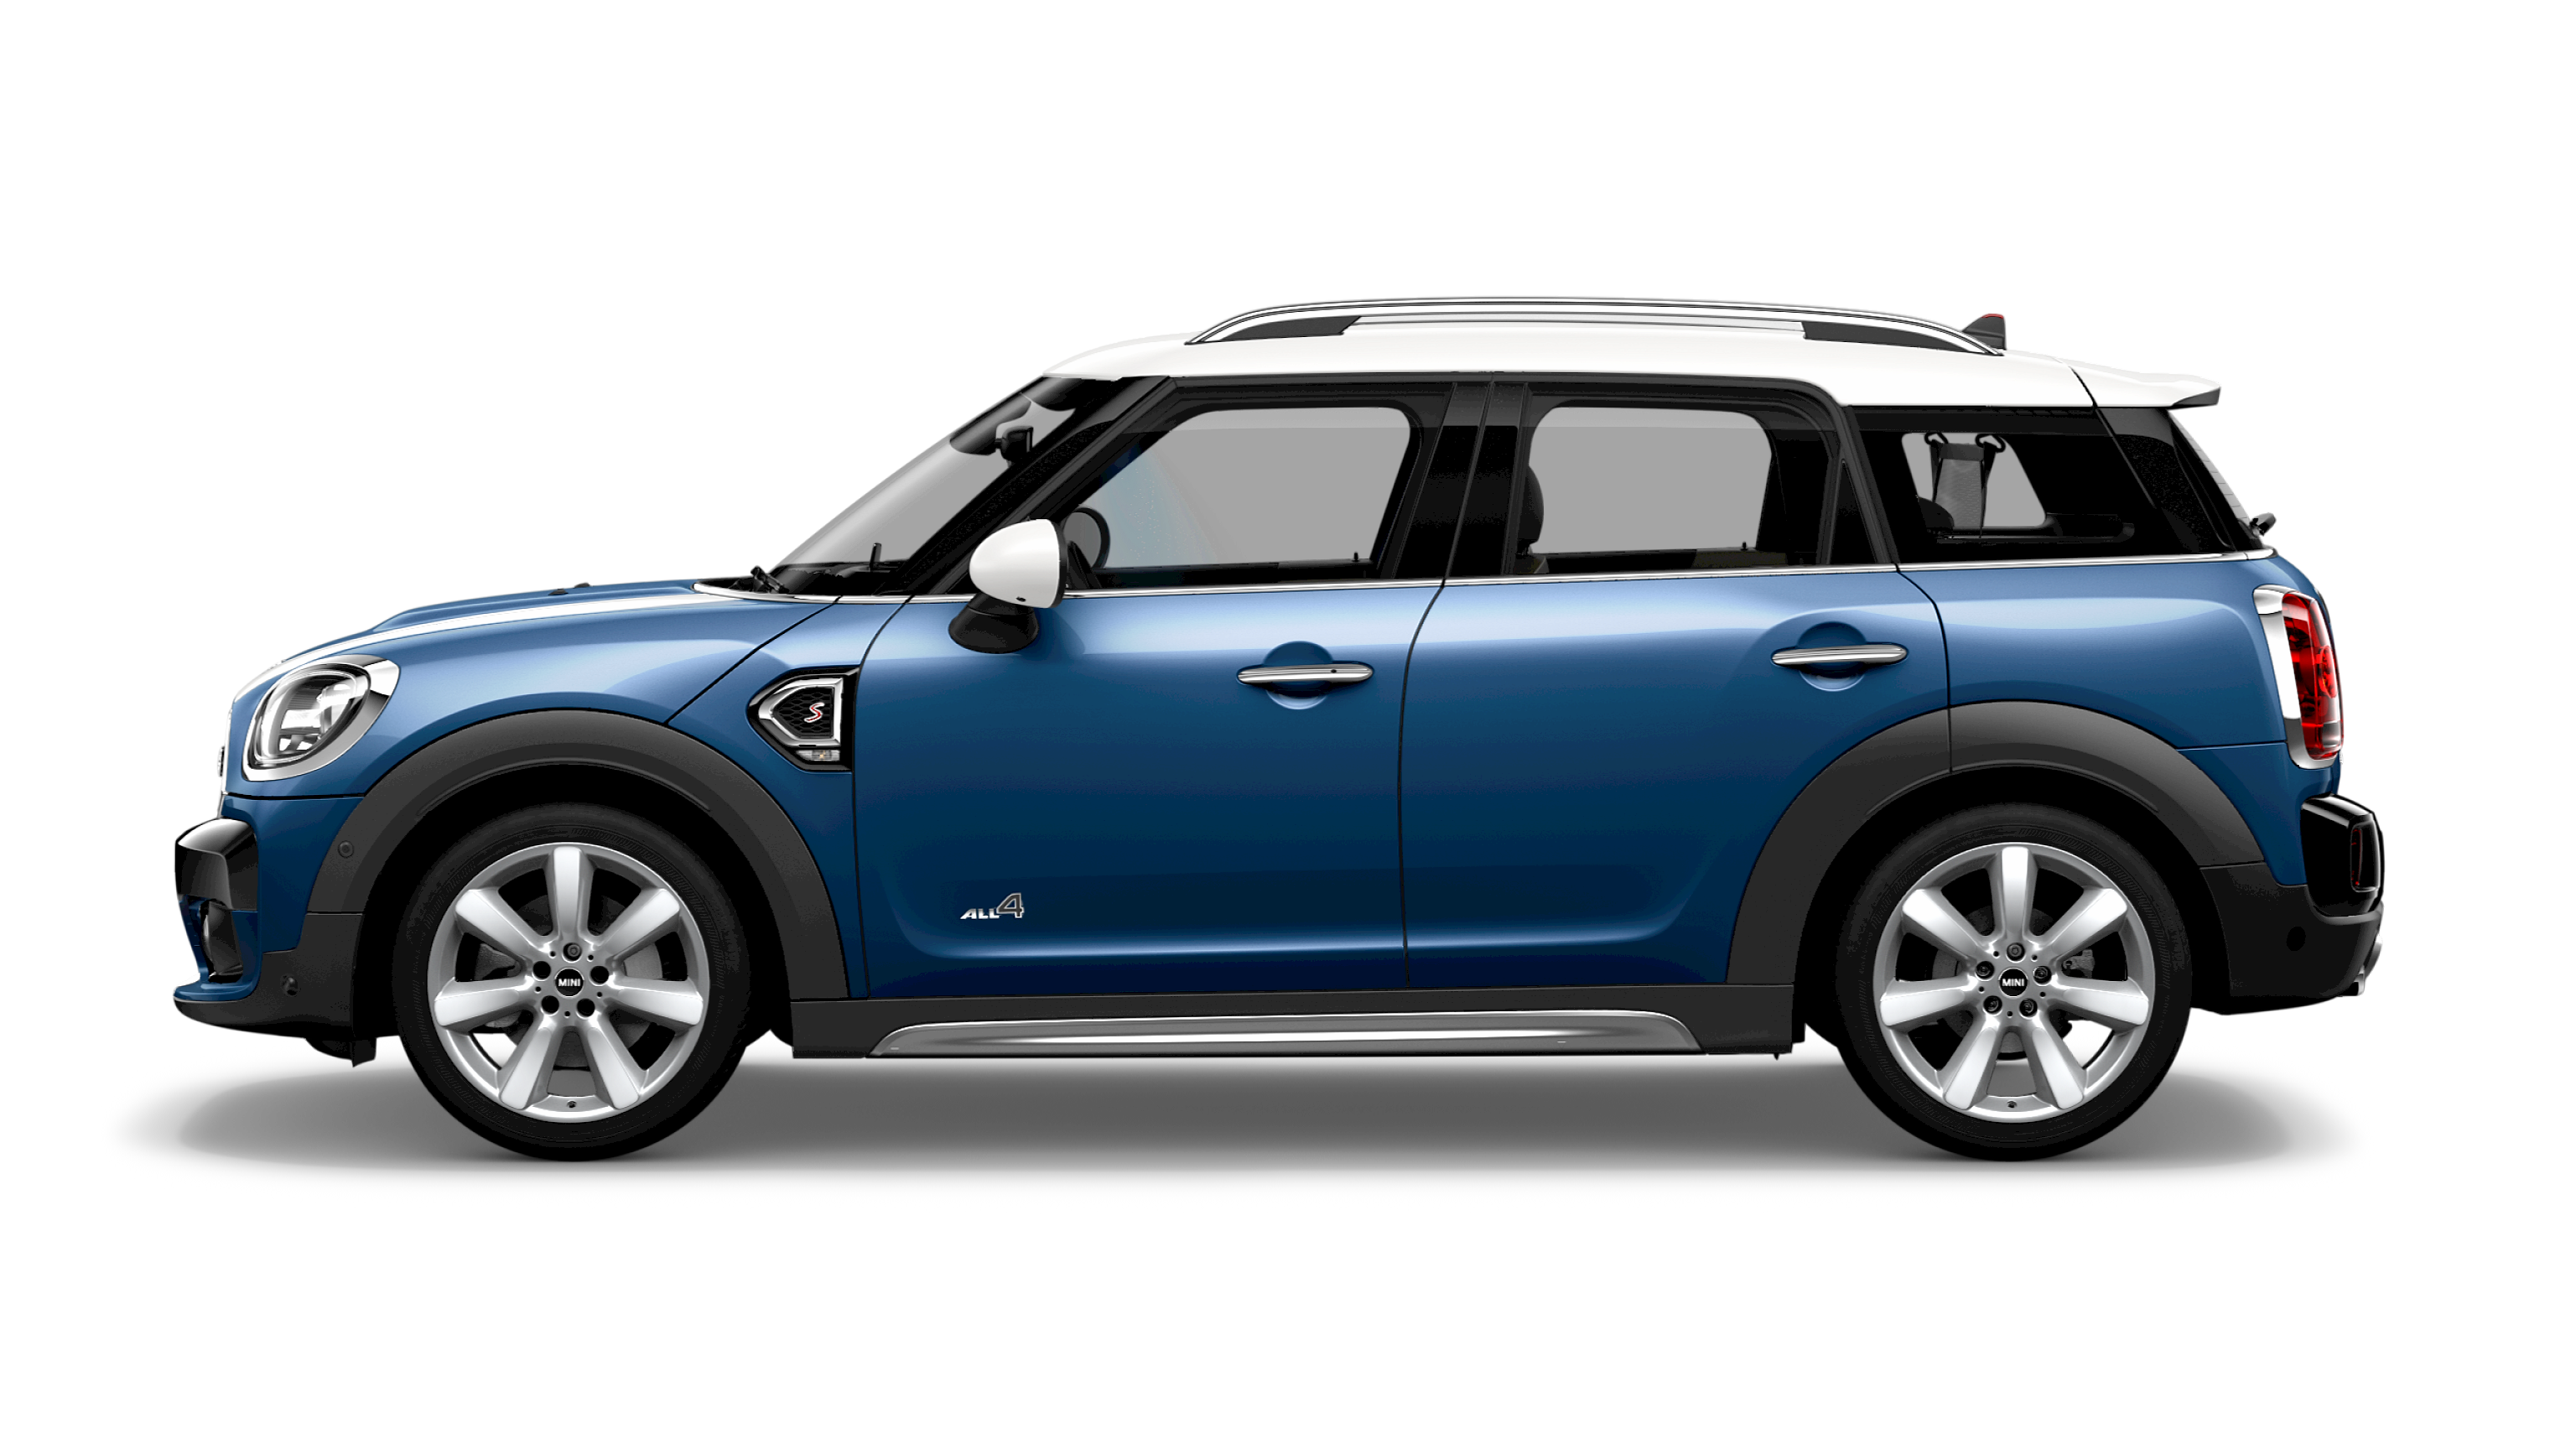 VISTA LATERAL DO MINI COUNTRYMAN